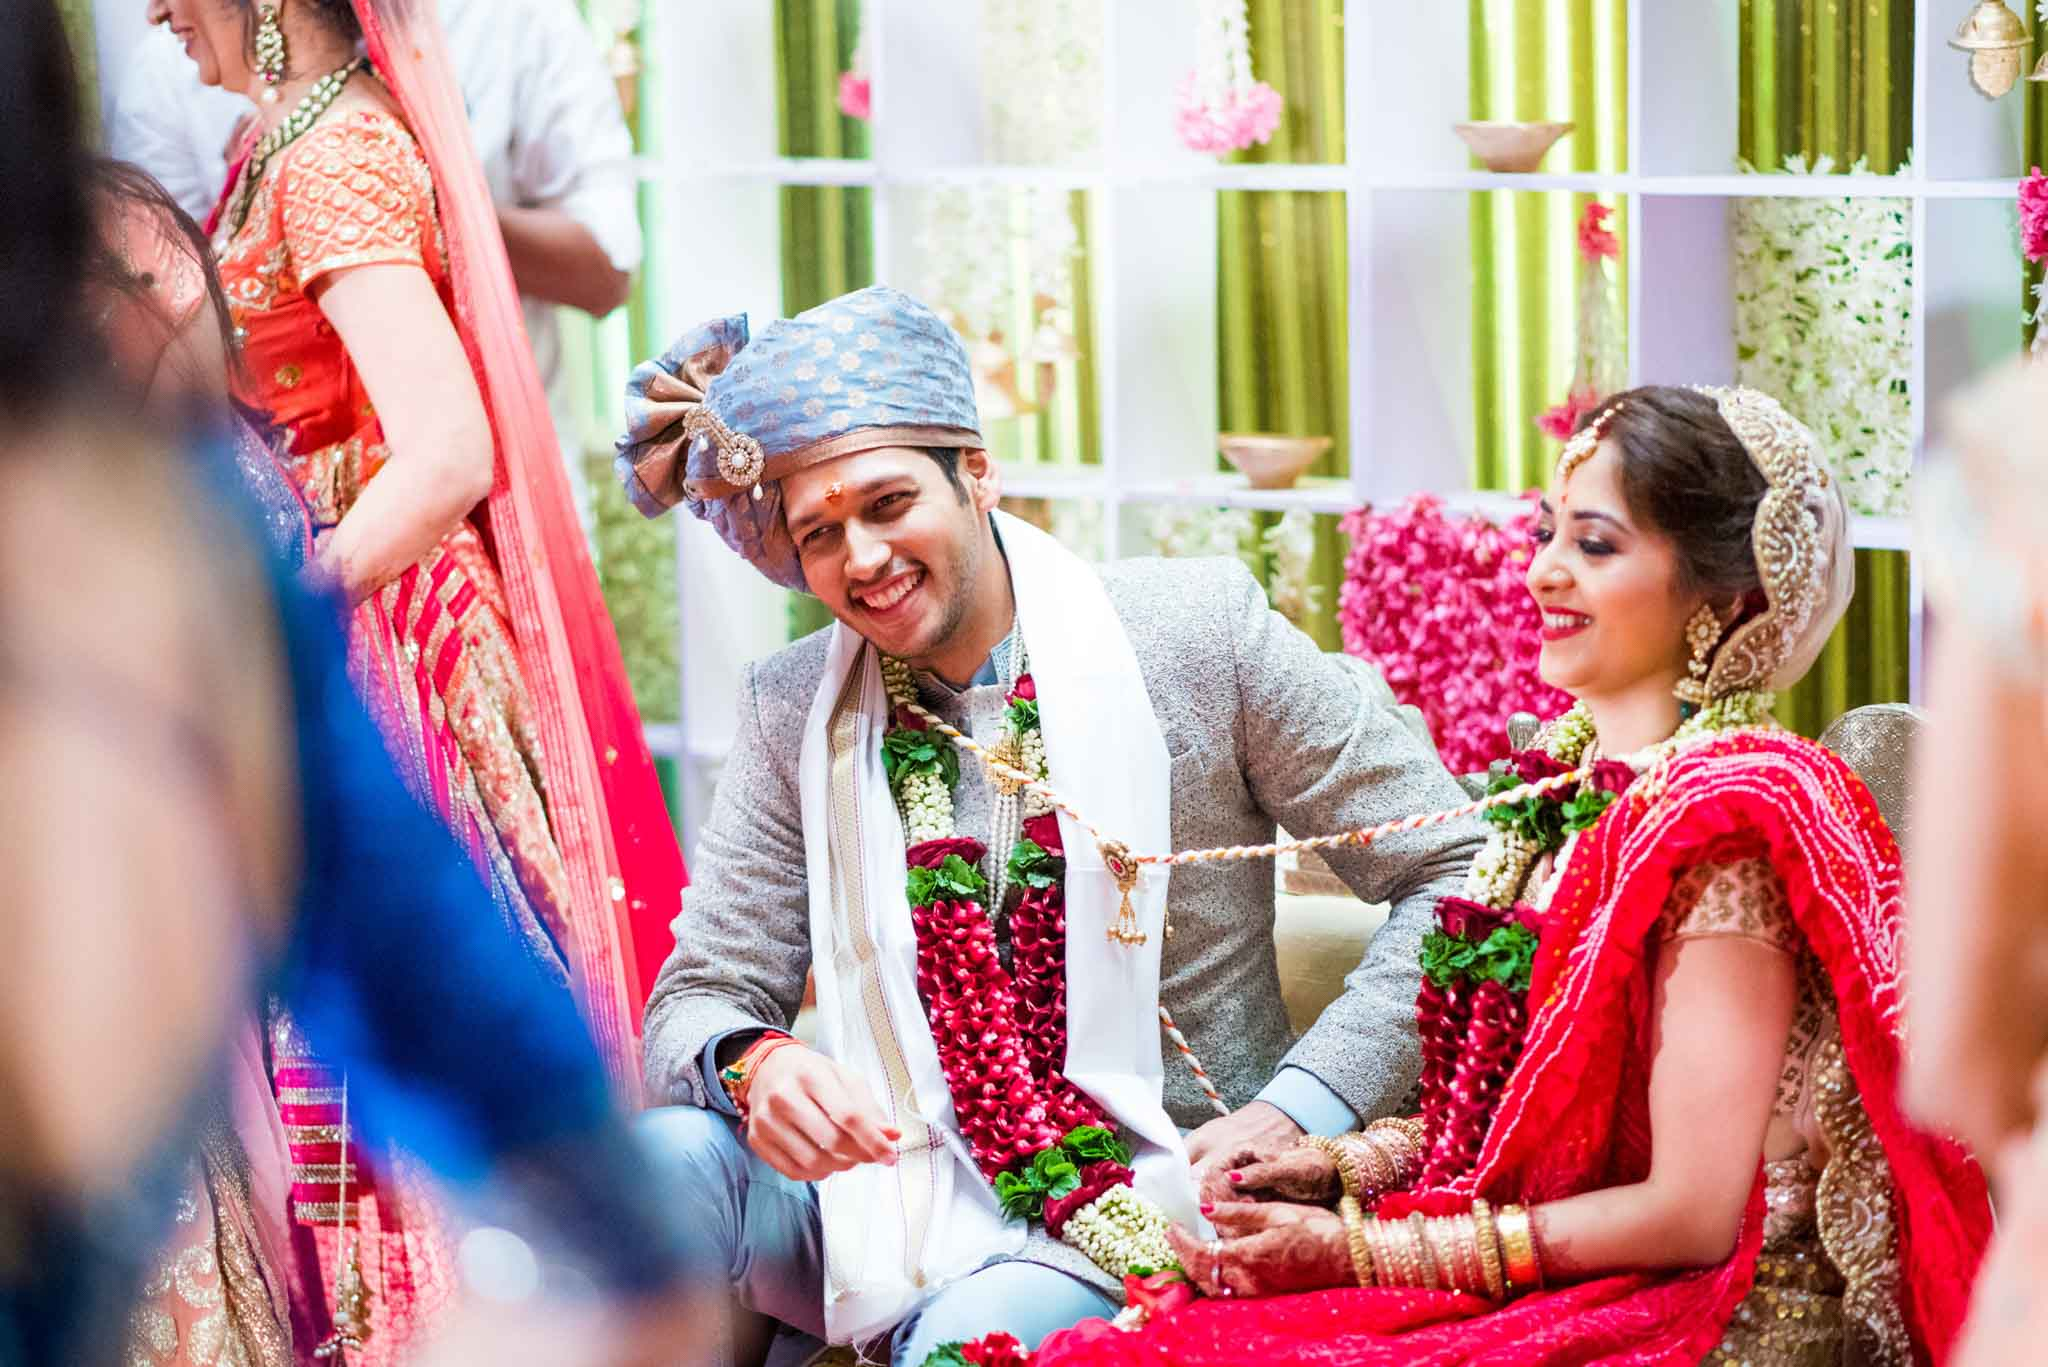 StRegis-Palladium-Mumbai-Candid-Wedding-Photography-54